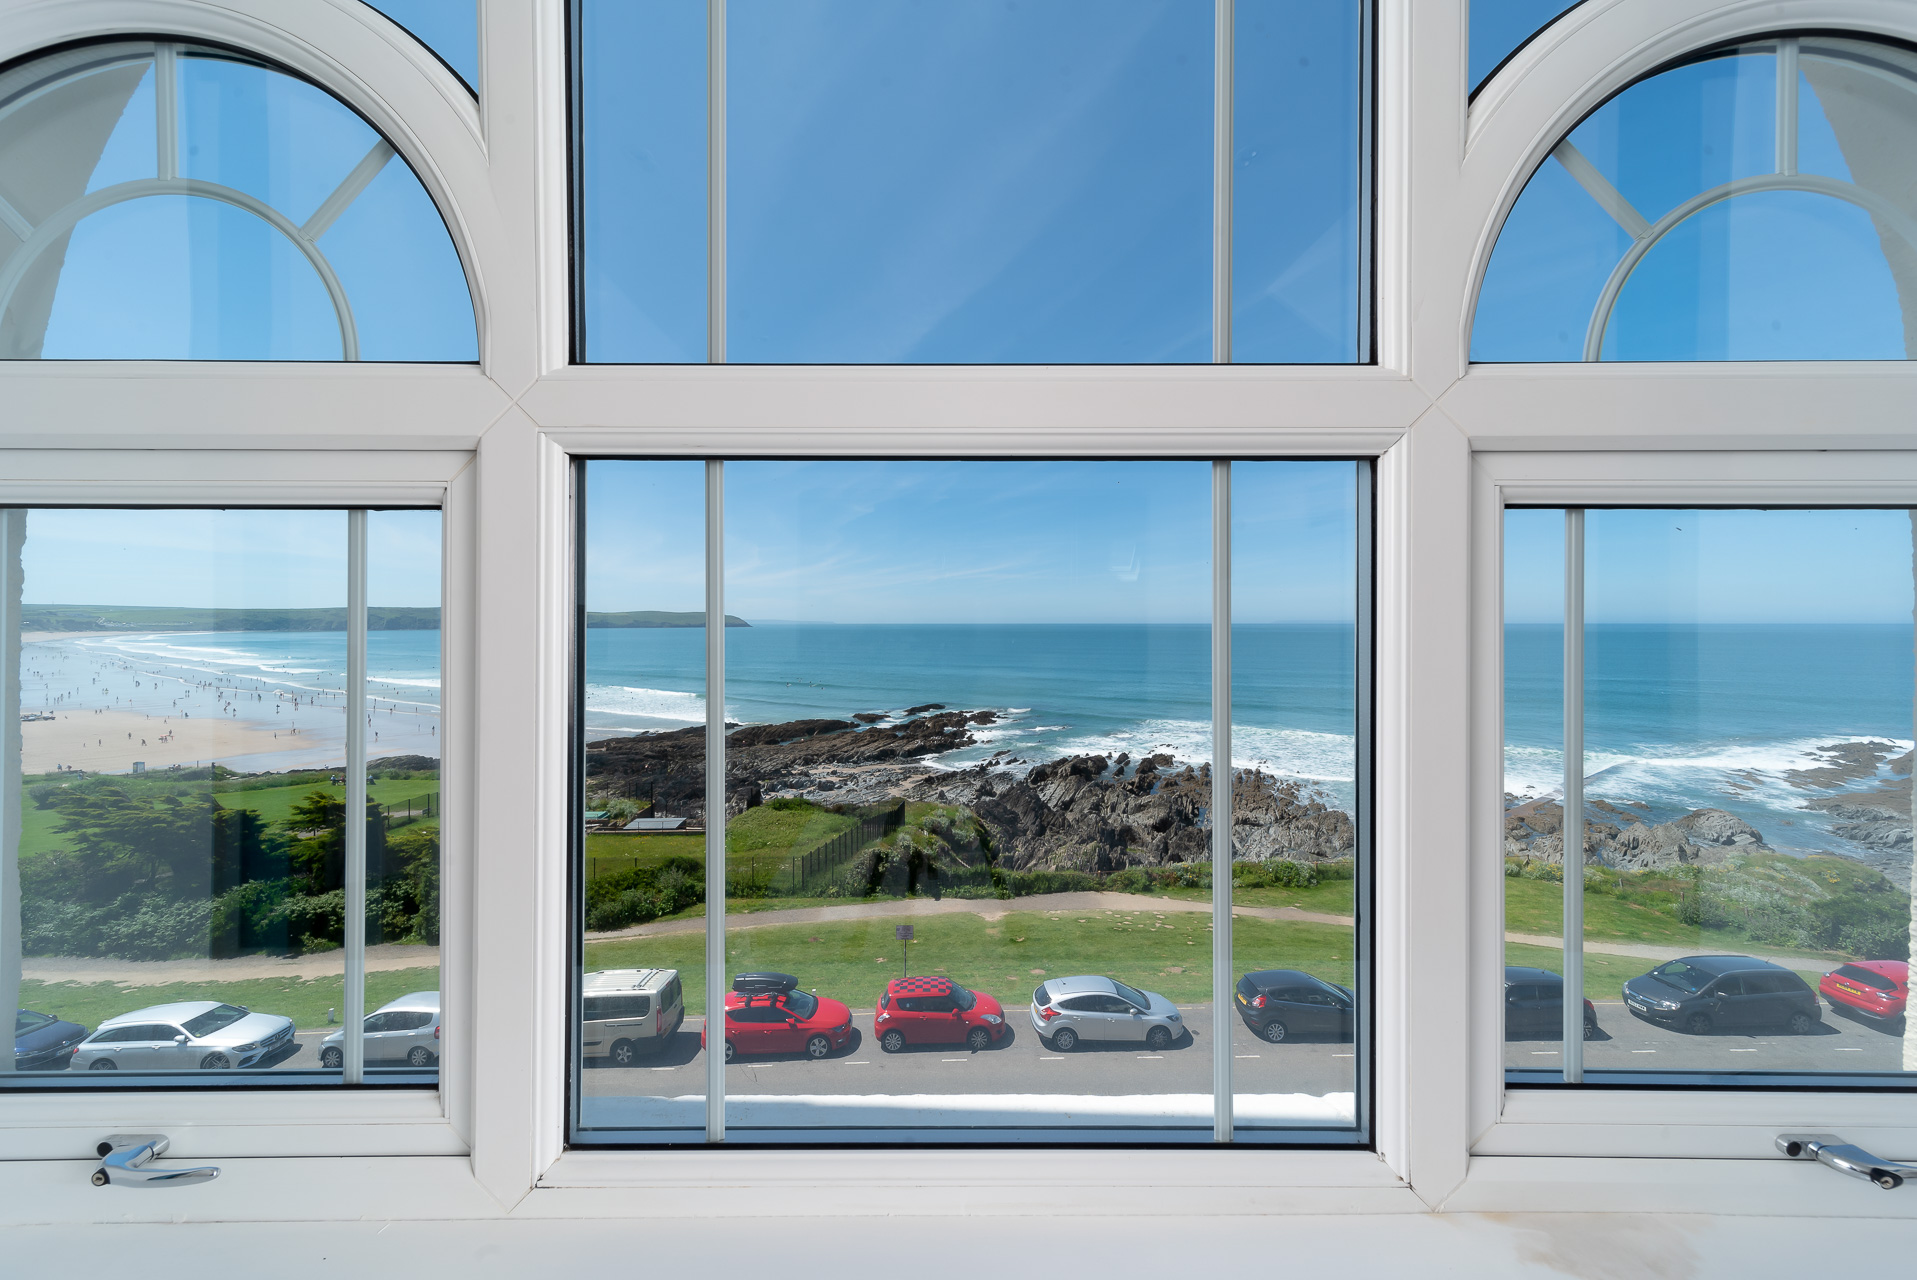 View overlooking Woolacombe Beach through the unique window at Woolacombe Penthouse